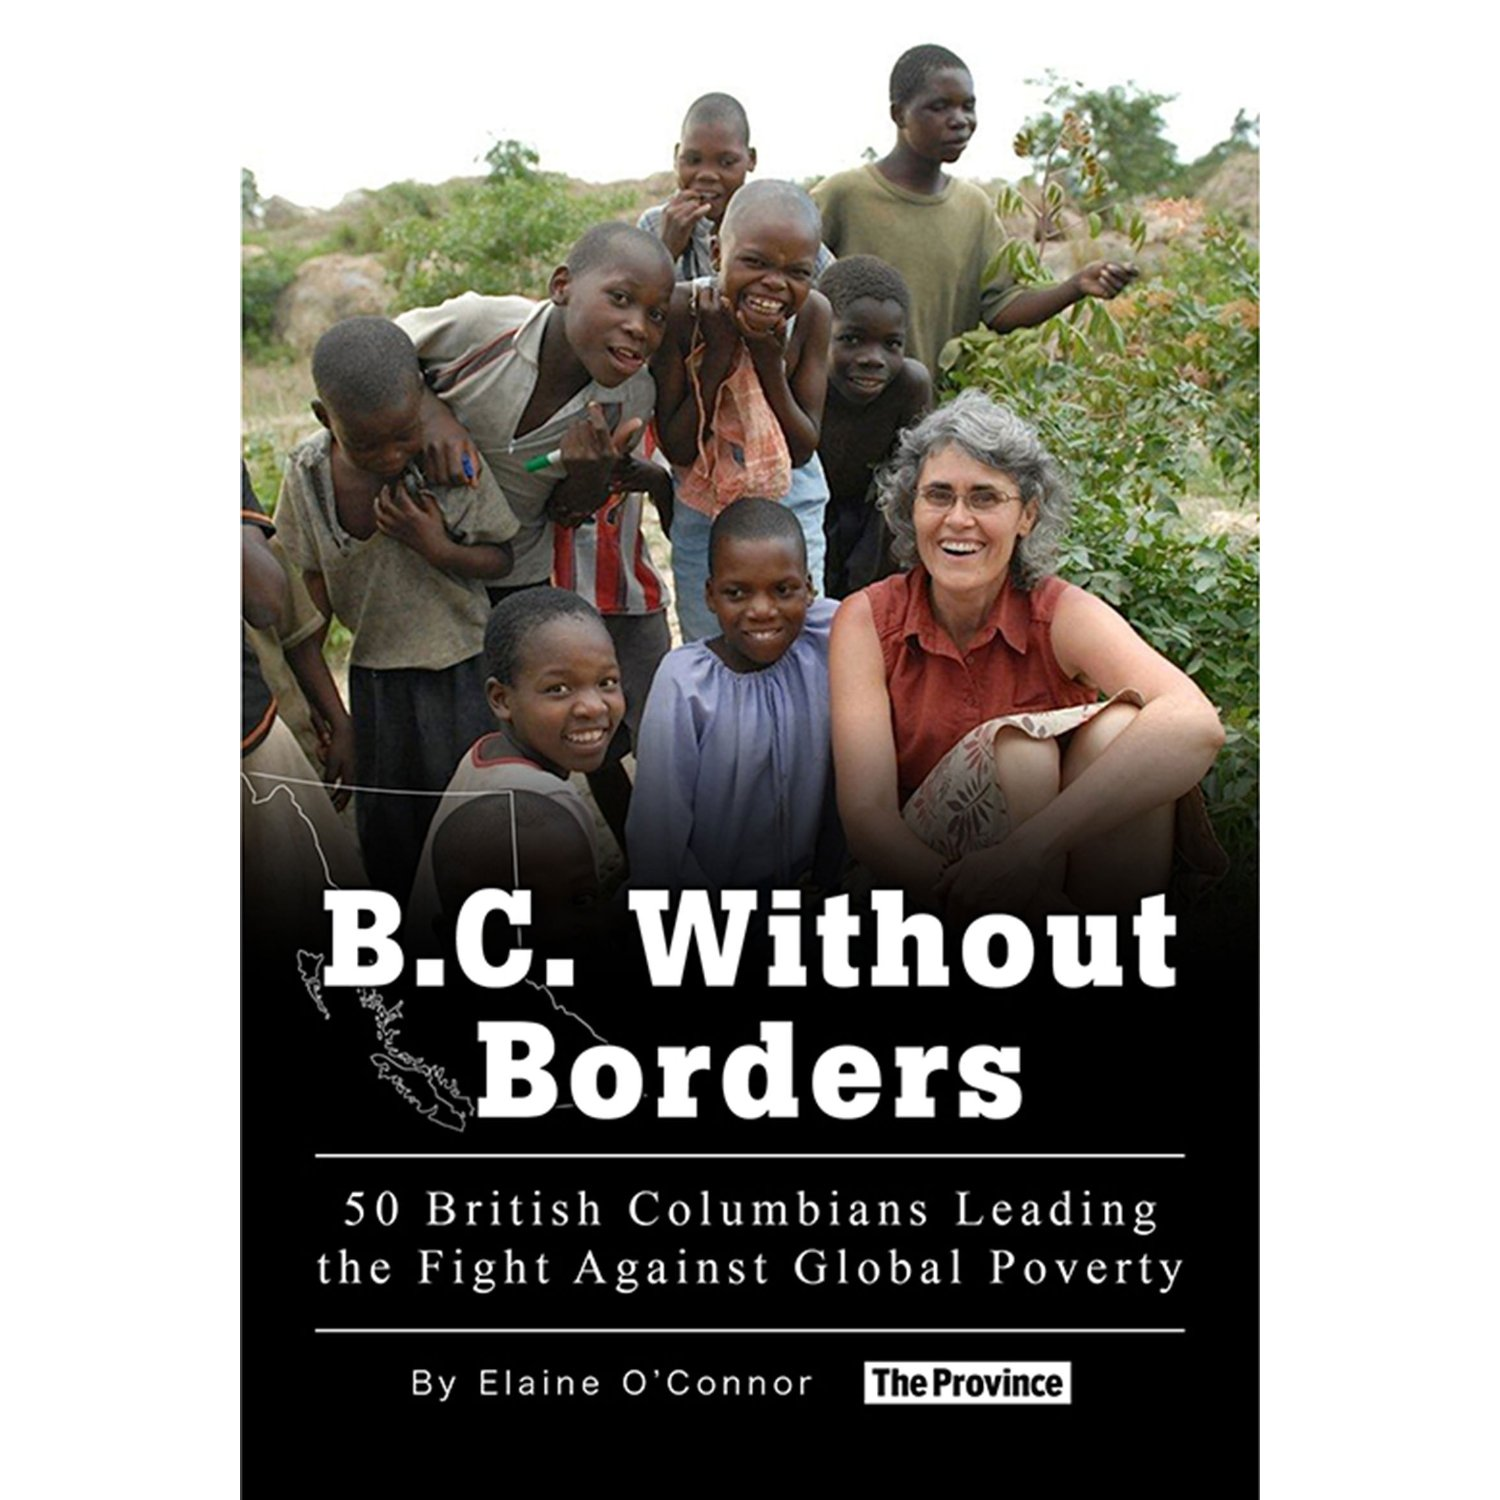 B.C. Without Borders: 50 British Columbians Leading the Fight Against Global Poverty